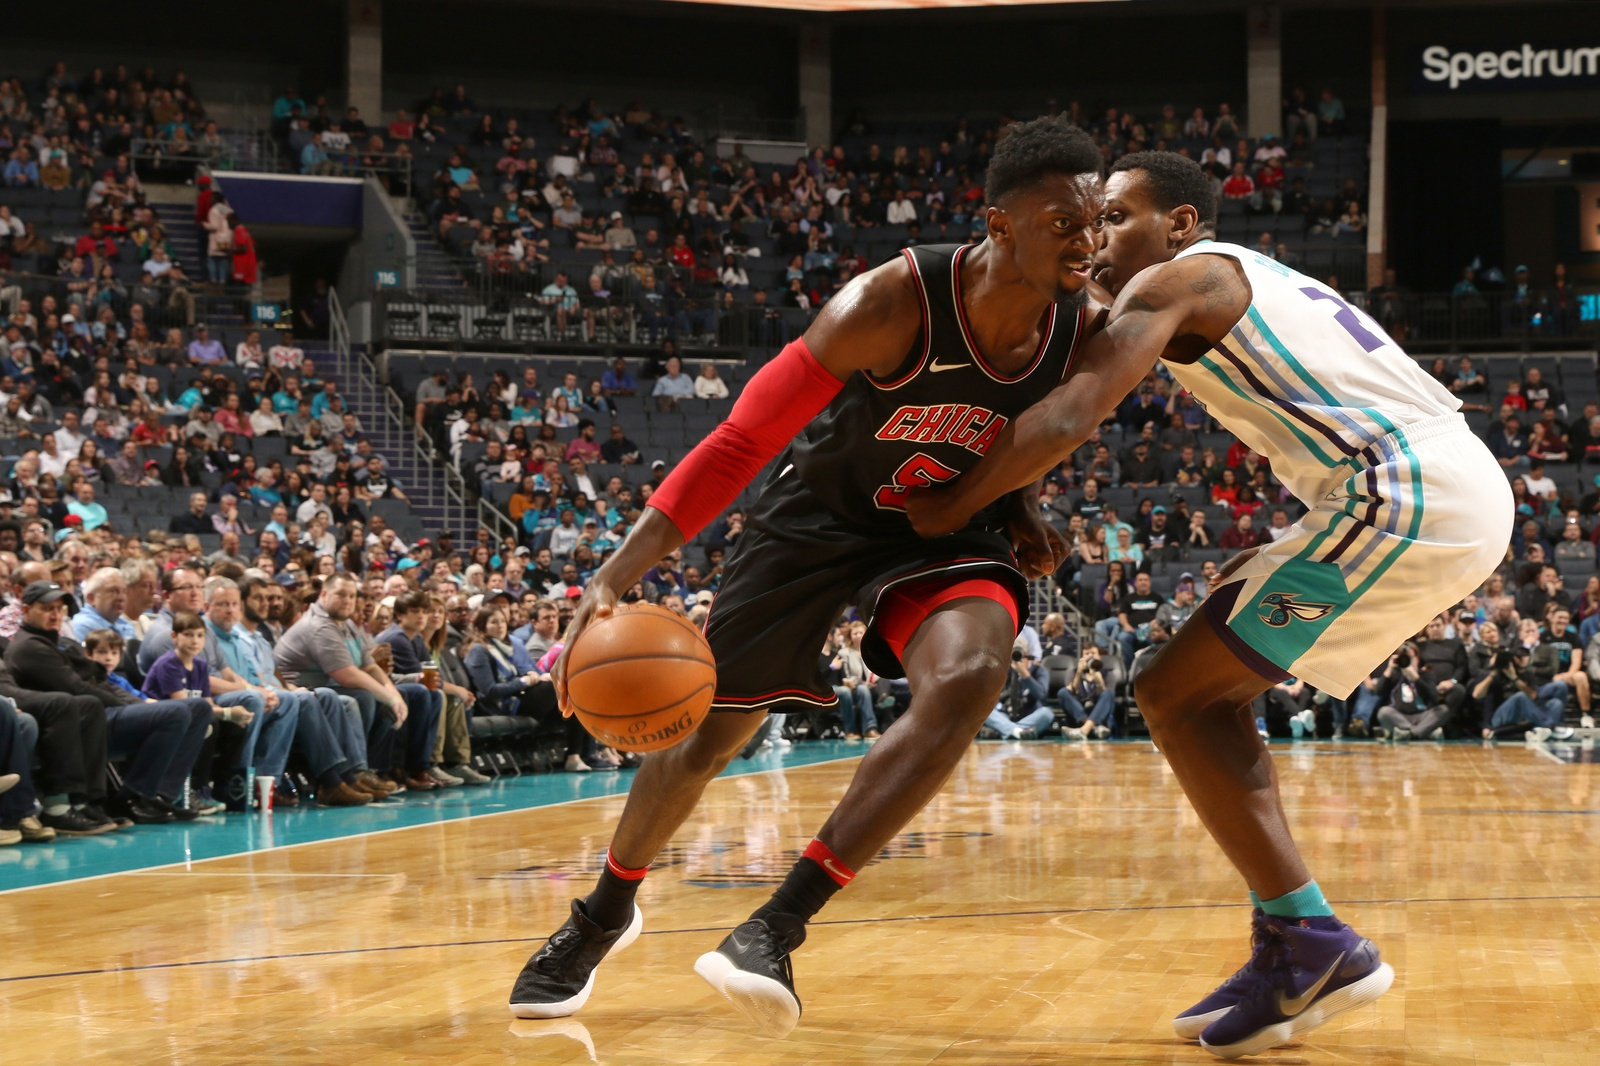 Bobby Portis #5 of the Chicago Bulls handles the ball against the Charlotte Hornets on February 27, 2018 at Spectrum Center in Charlotte, North Carolina.